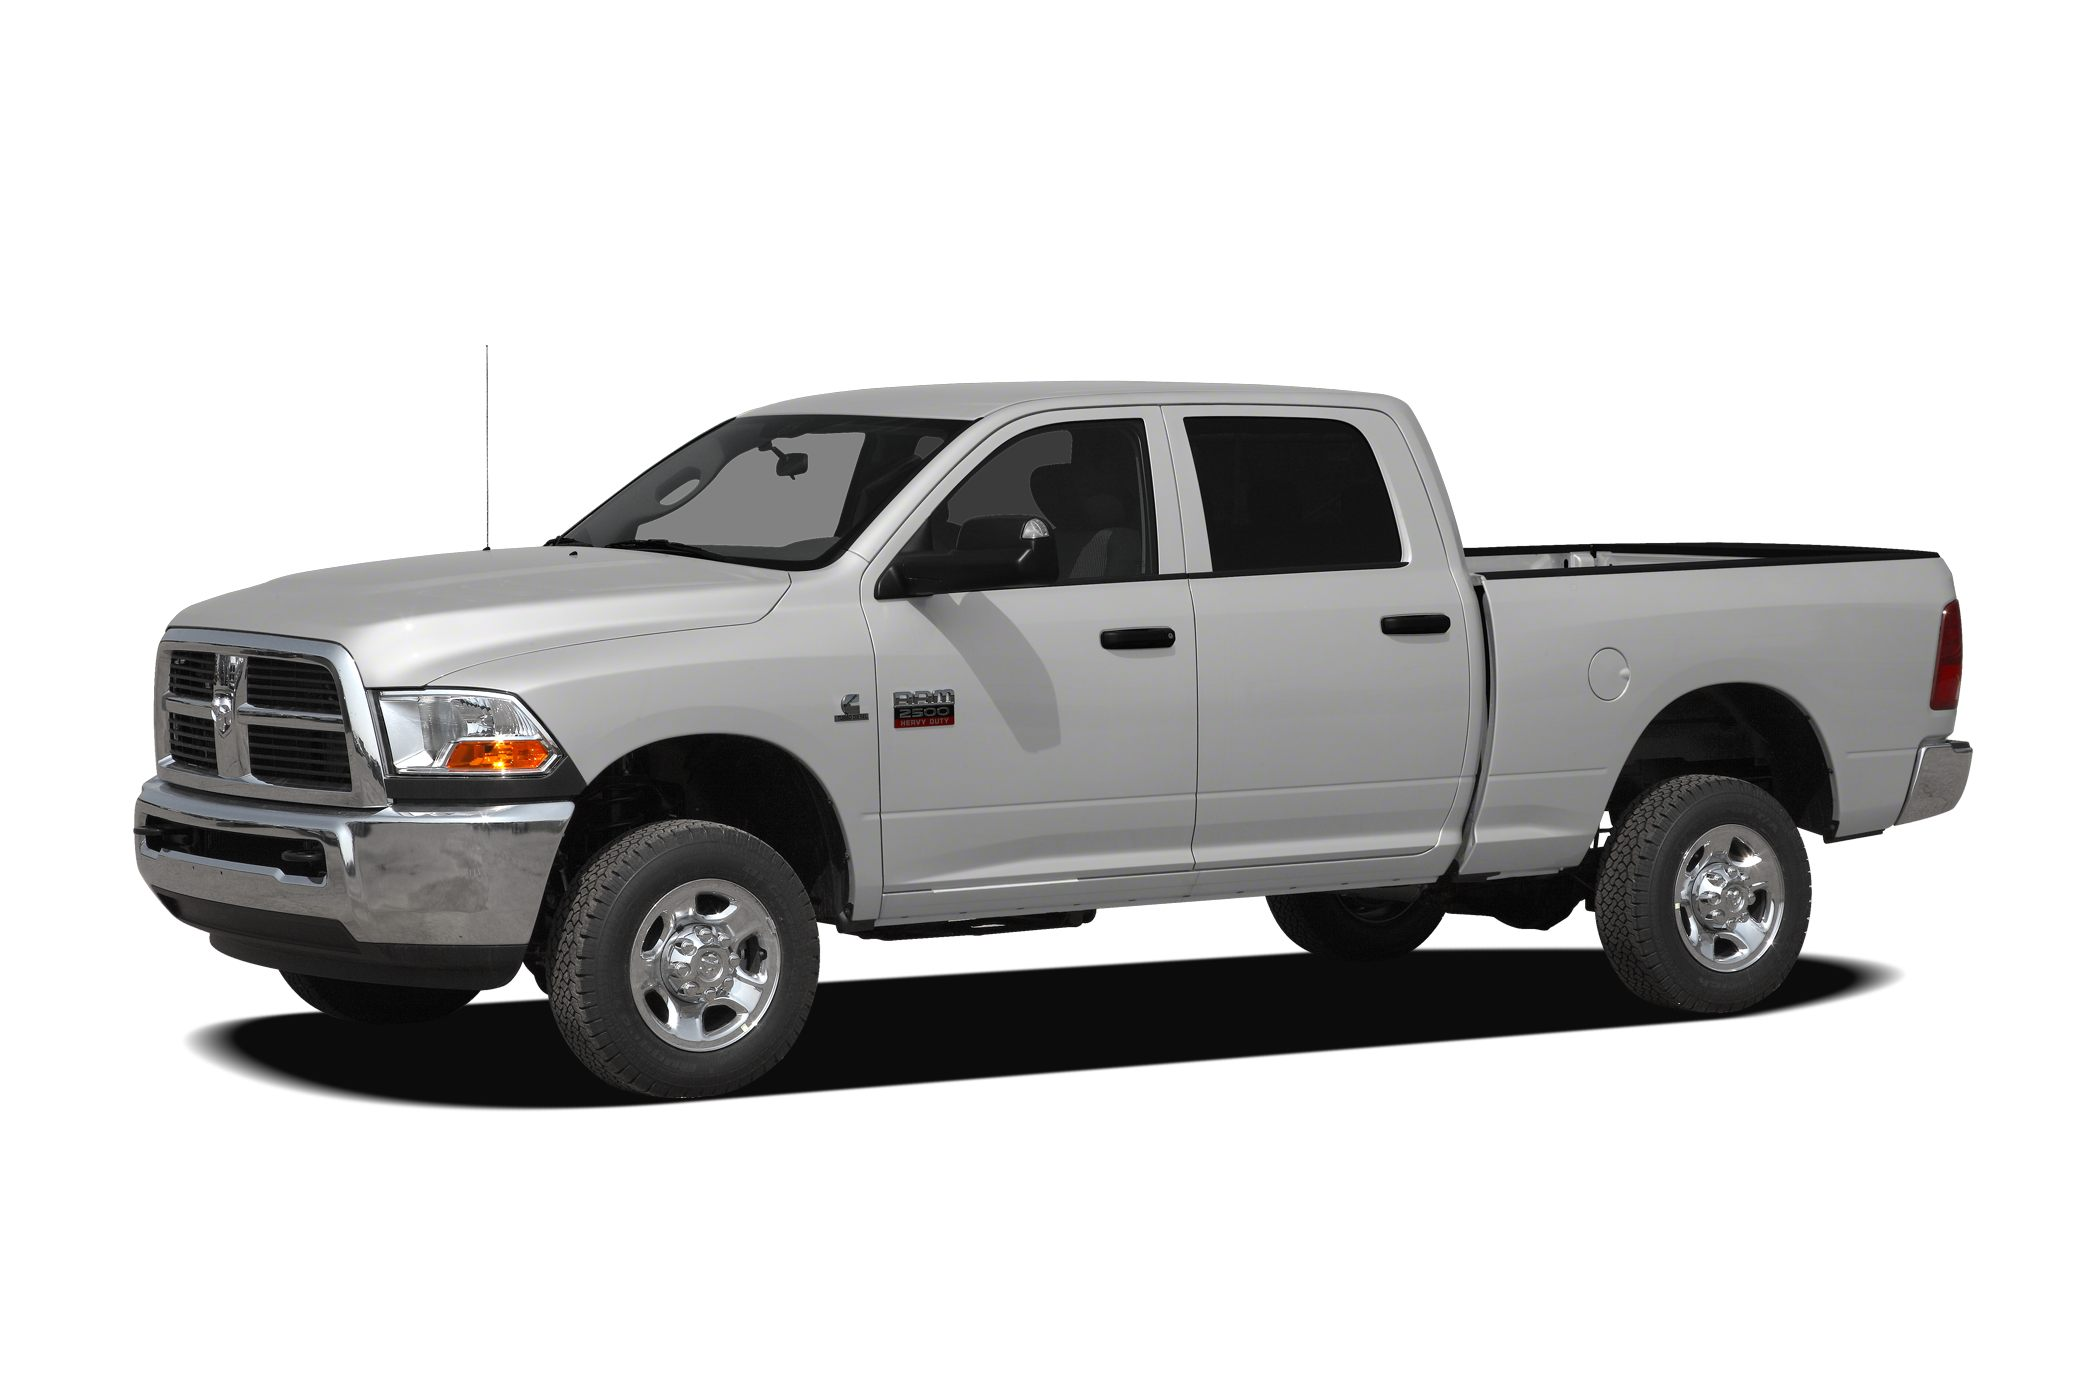 2012 RAM 2500 Laramie Crew Cab Pickup for sale in Brownwood for $41,499 with 27,523 miles